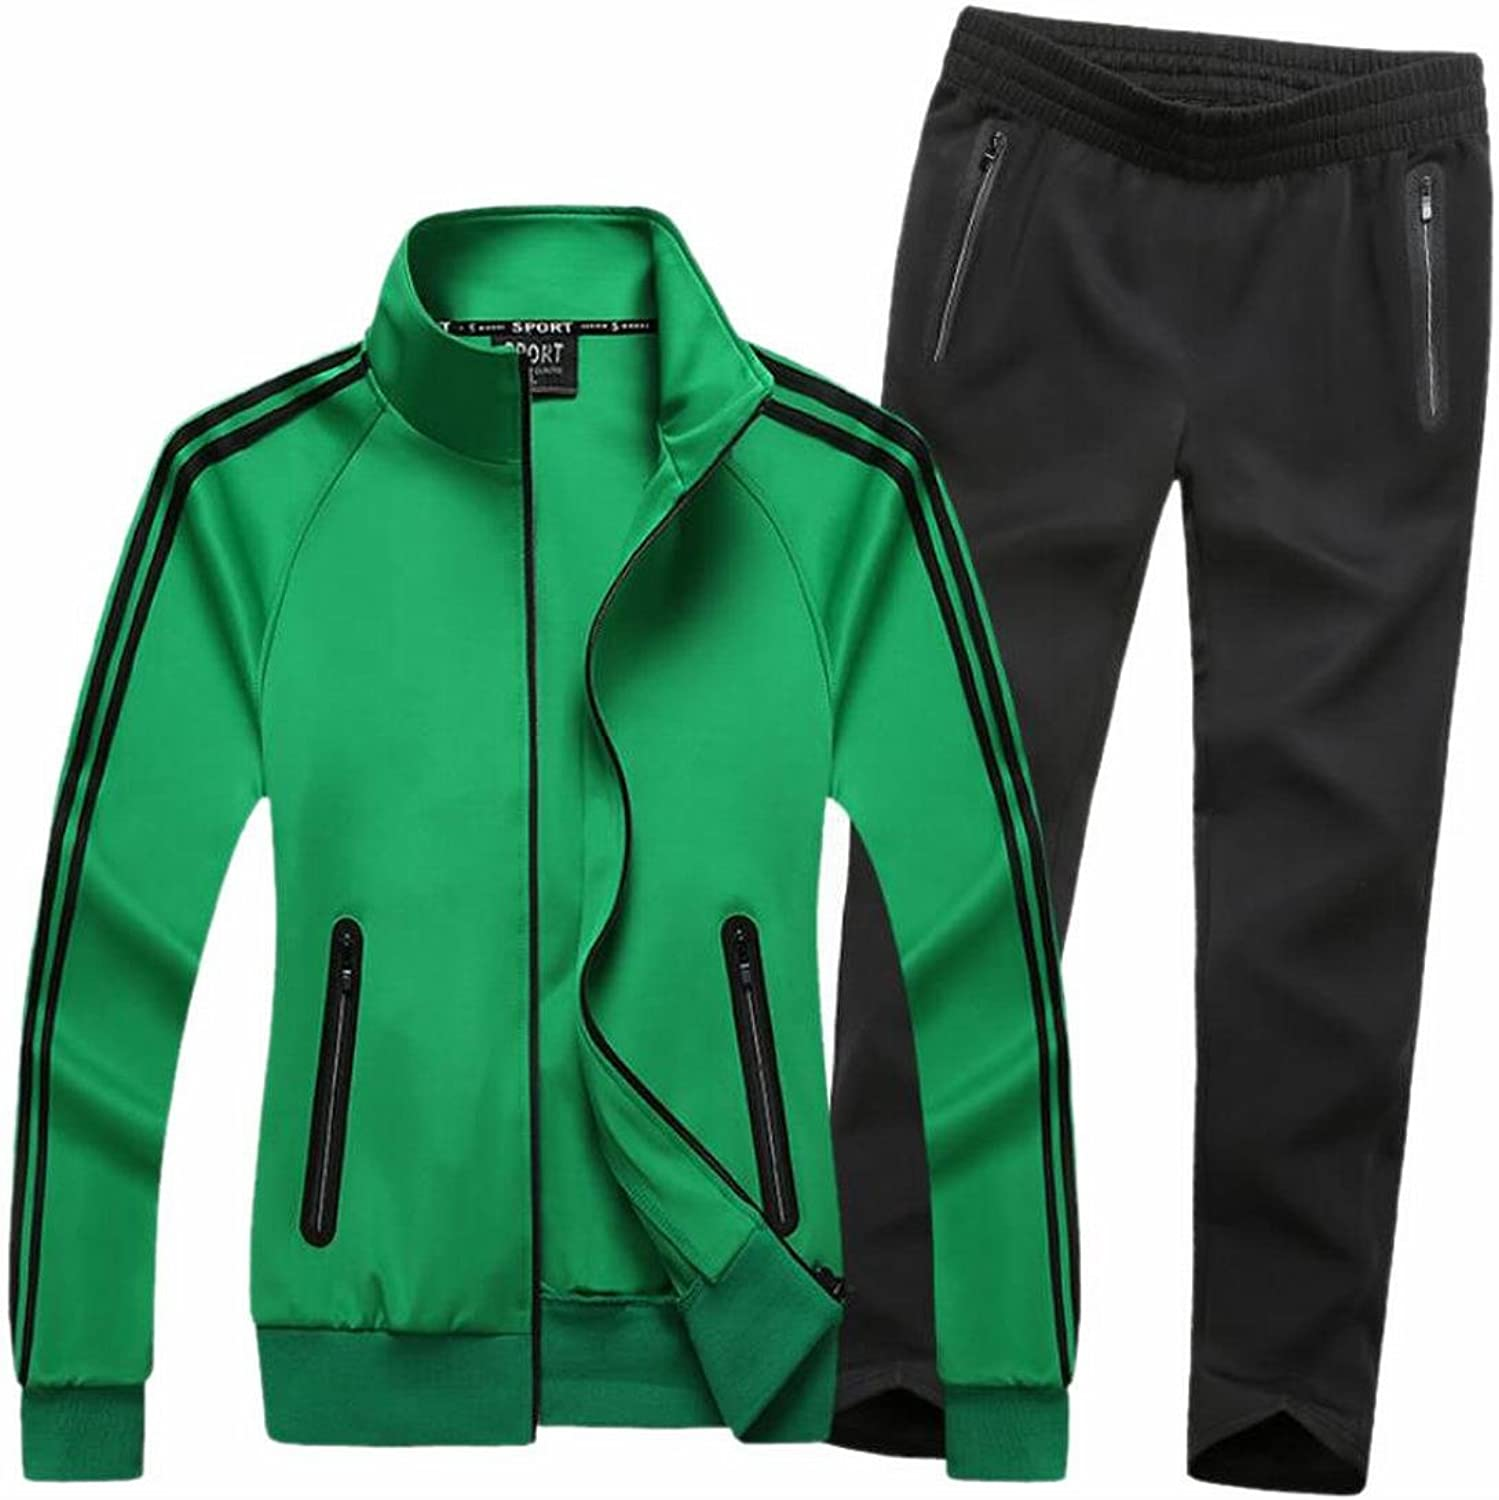 42c377f72d4bc7 GAGA Men's Fashion Sweatsuit Sweatsuit Sweatsuit Sports Zipper Up Jackets  Sweatpants Tracksuits 3d8ddc